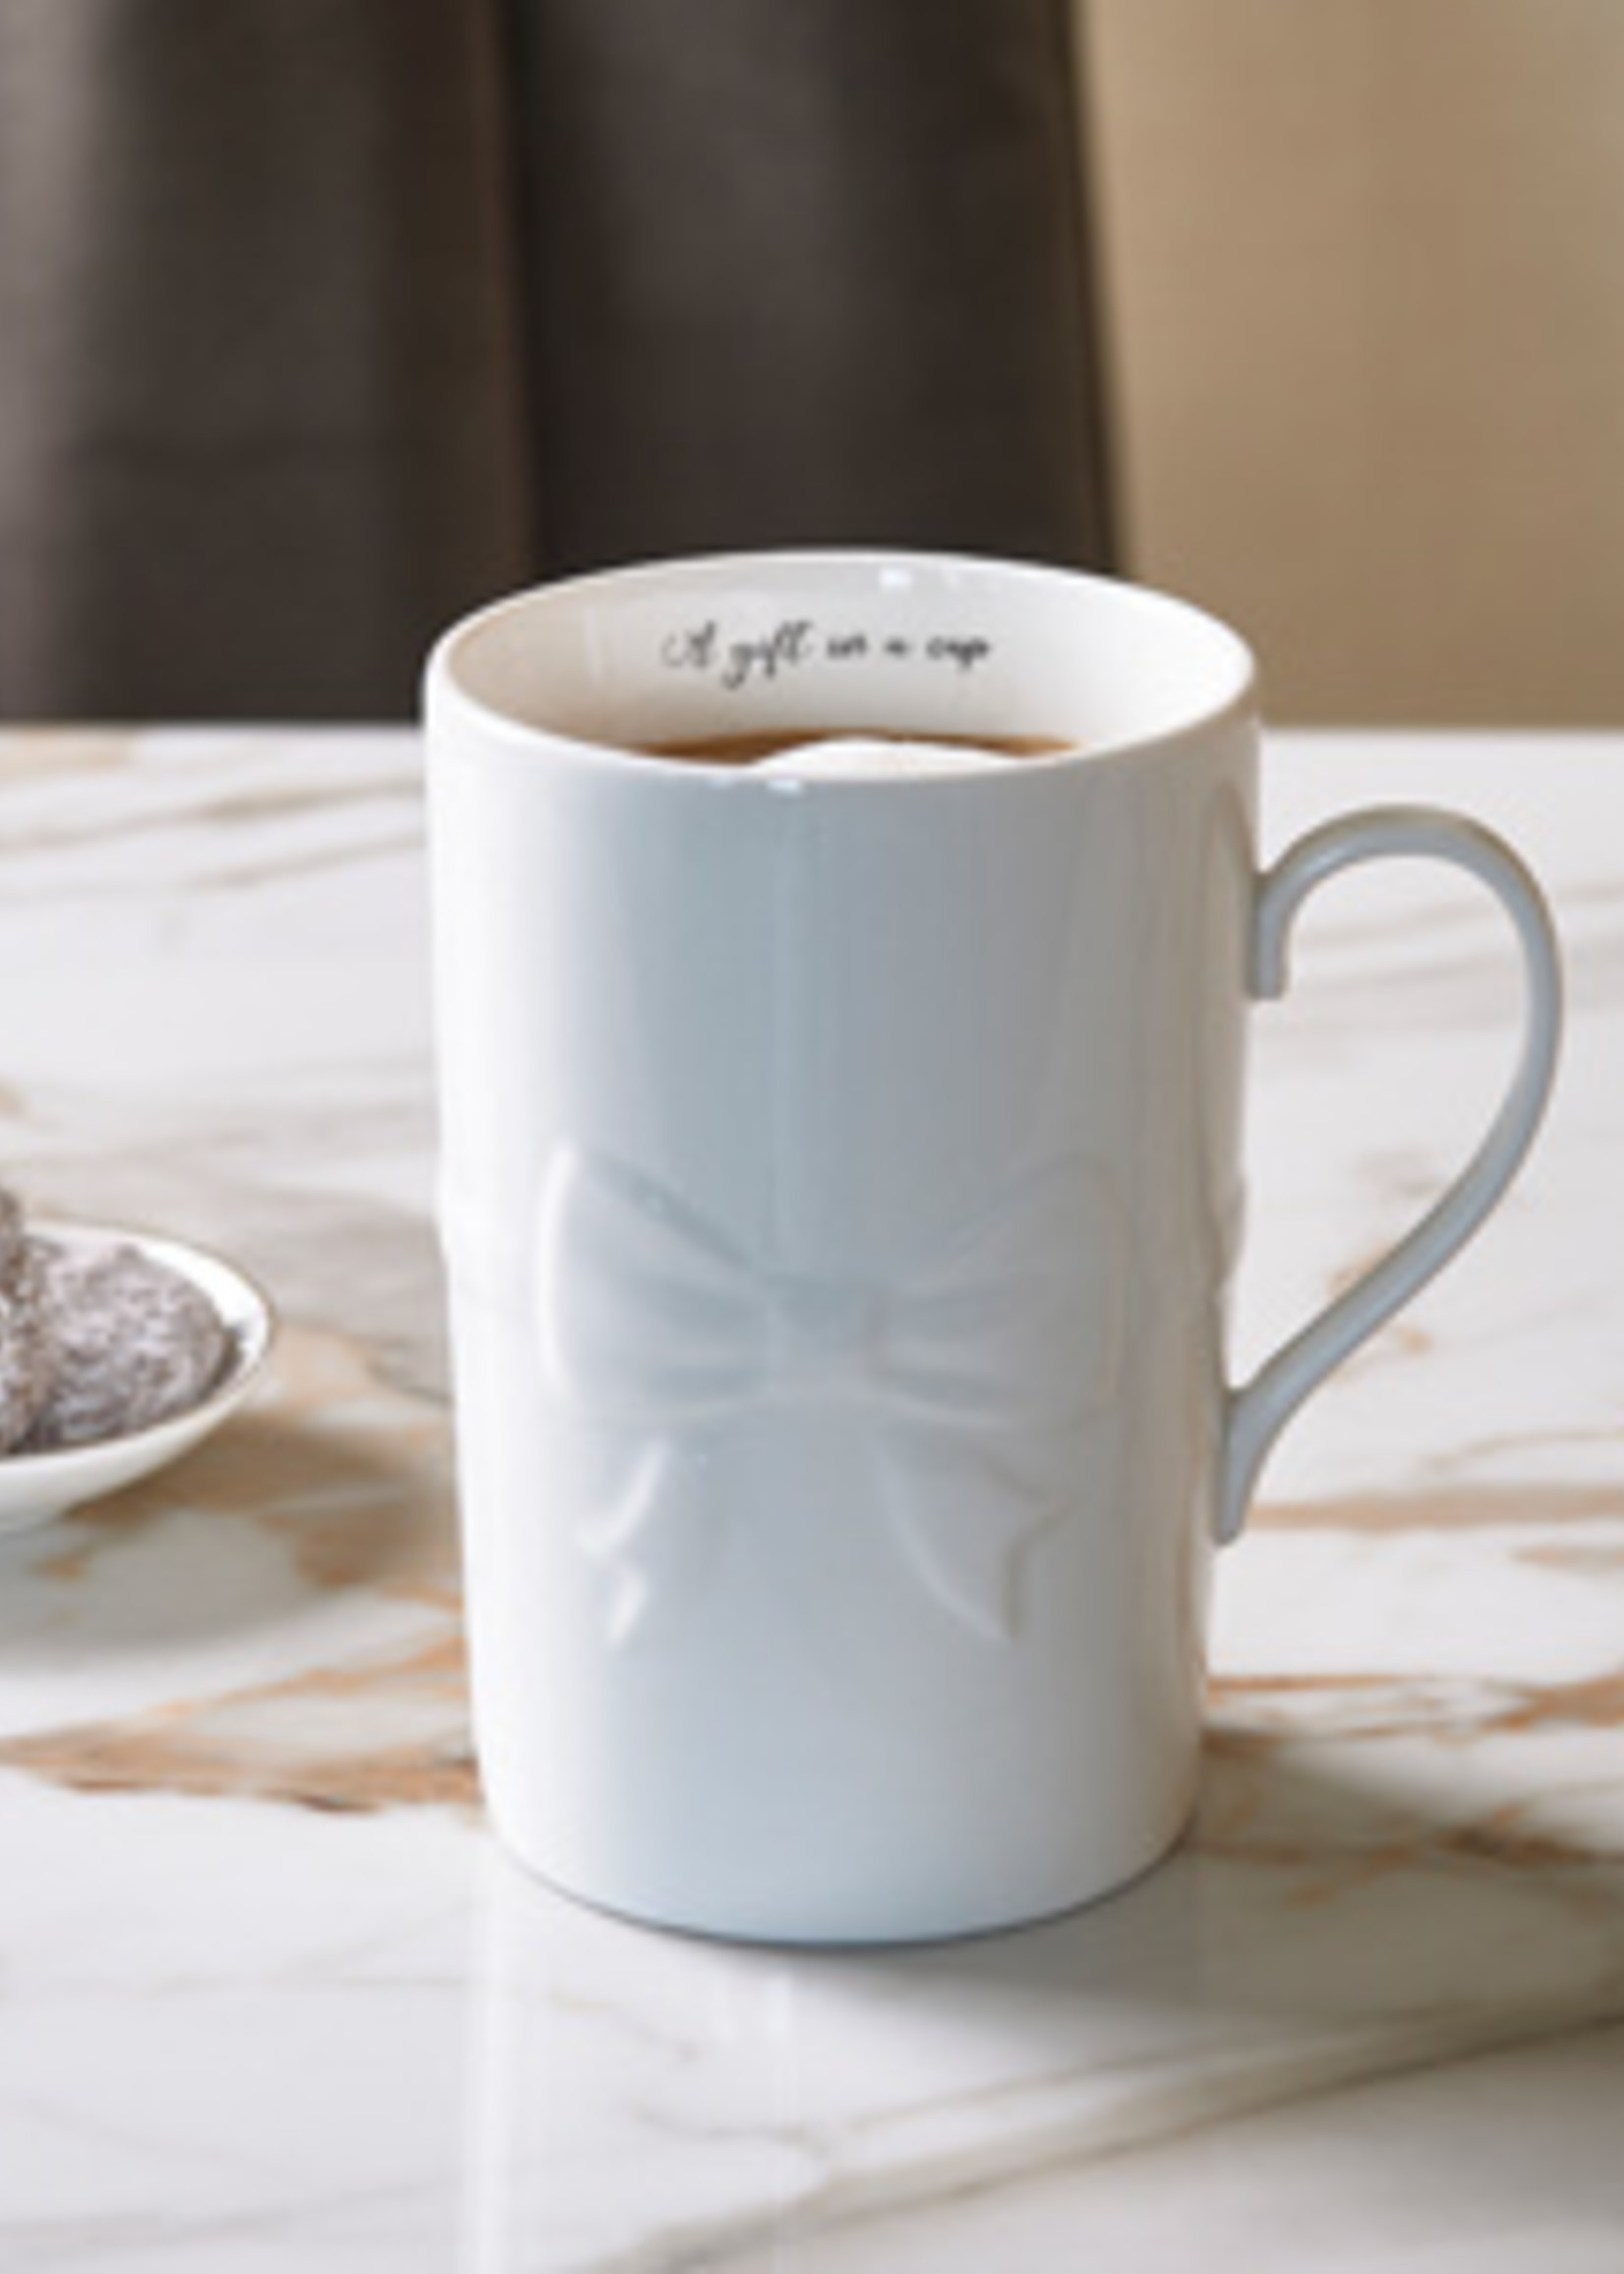 Riviera Maison A Gift In A Cup Mug L